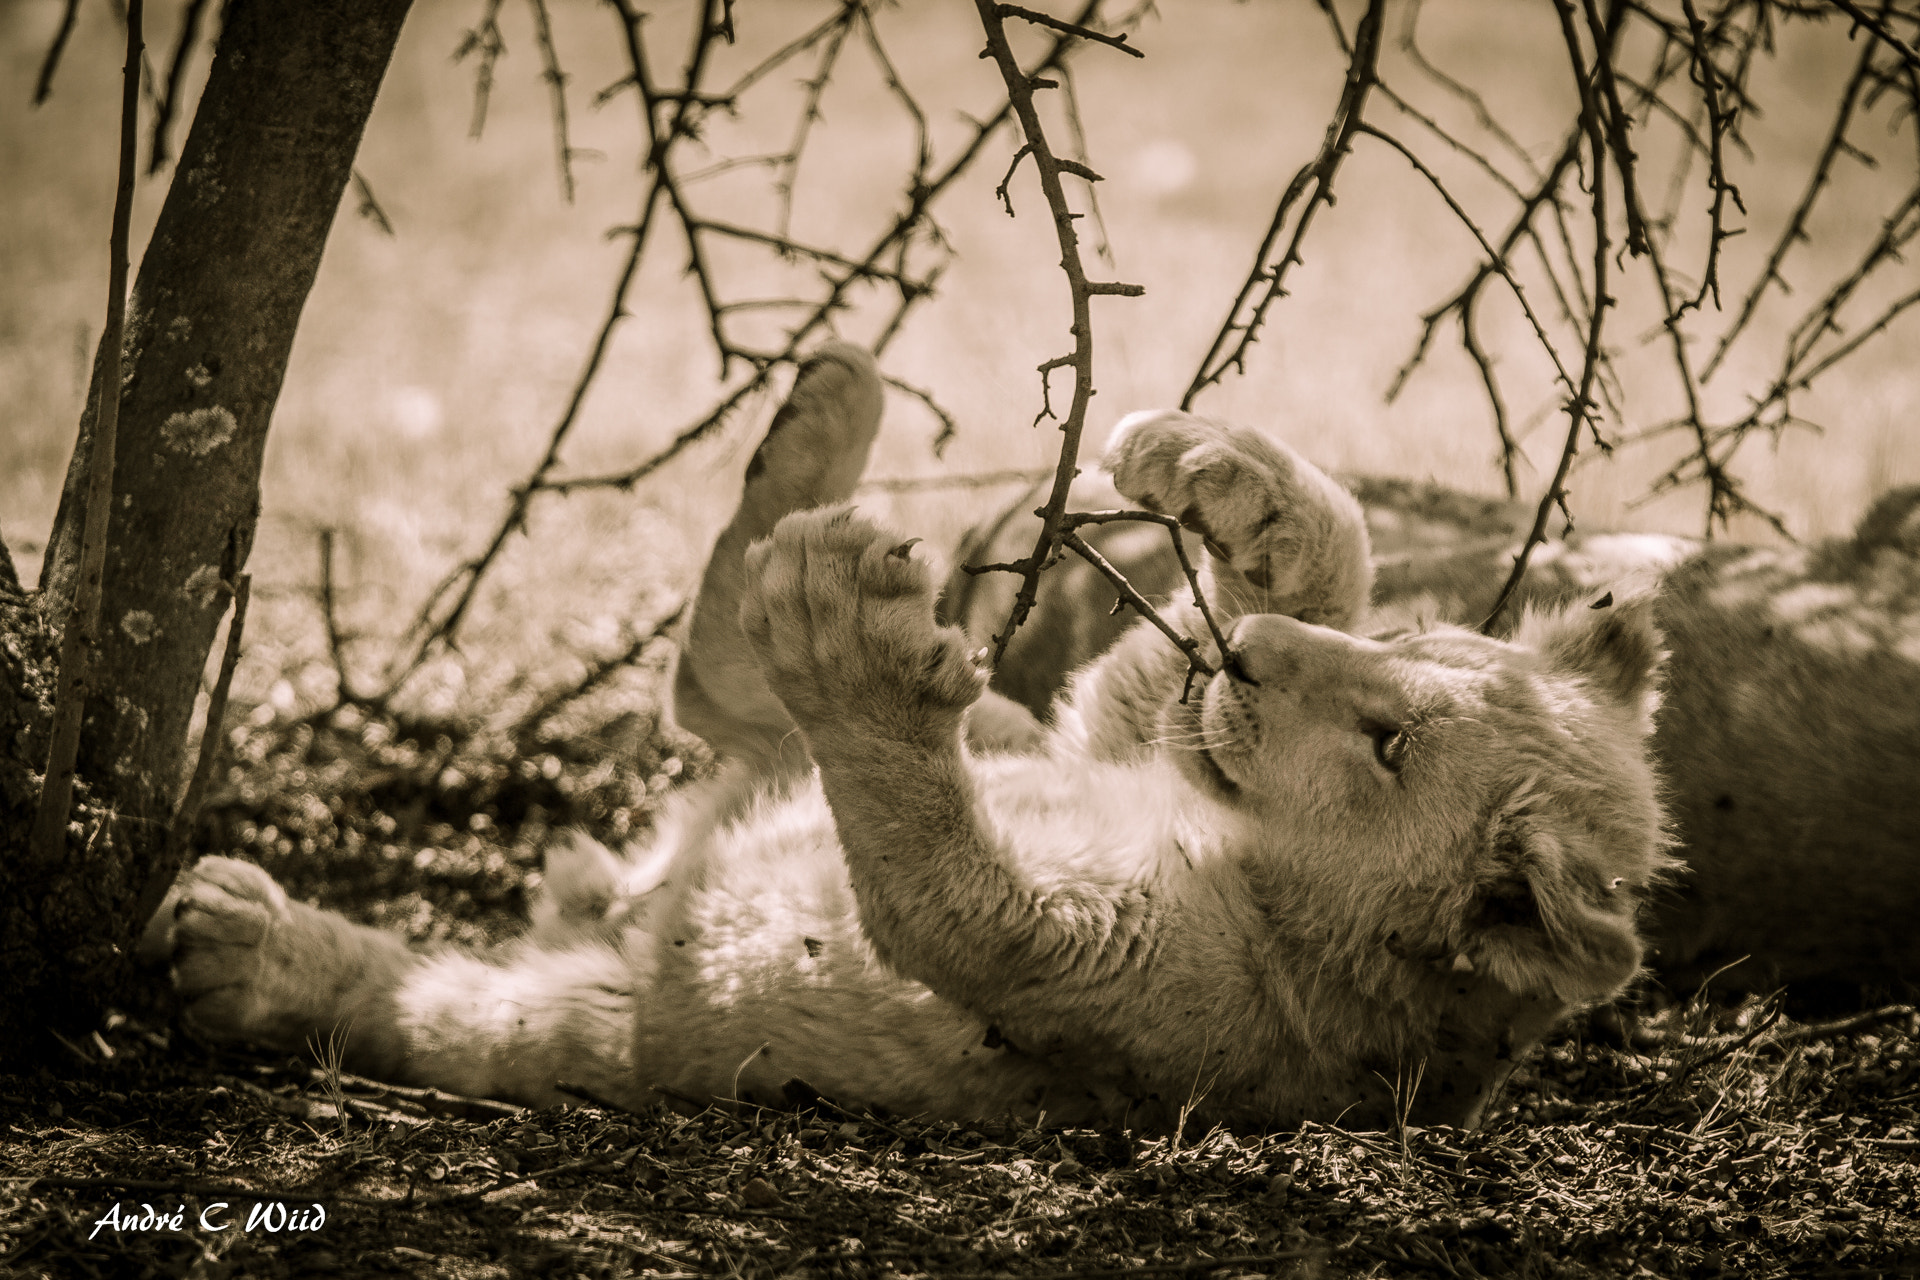 Photograph Playful Cub by Andre Wiid on 500px